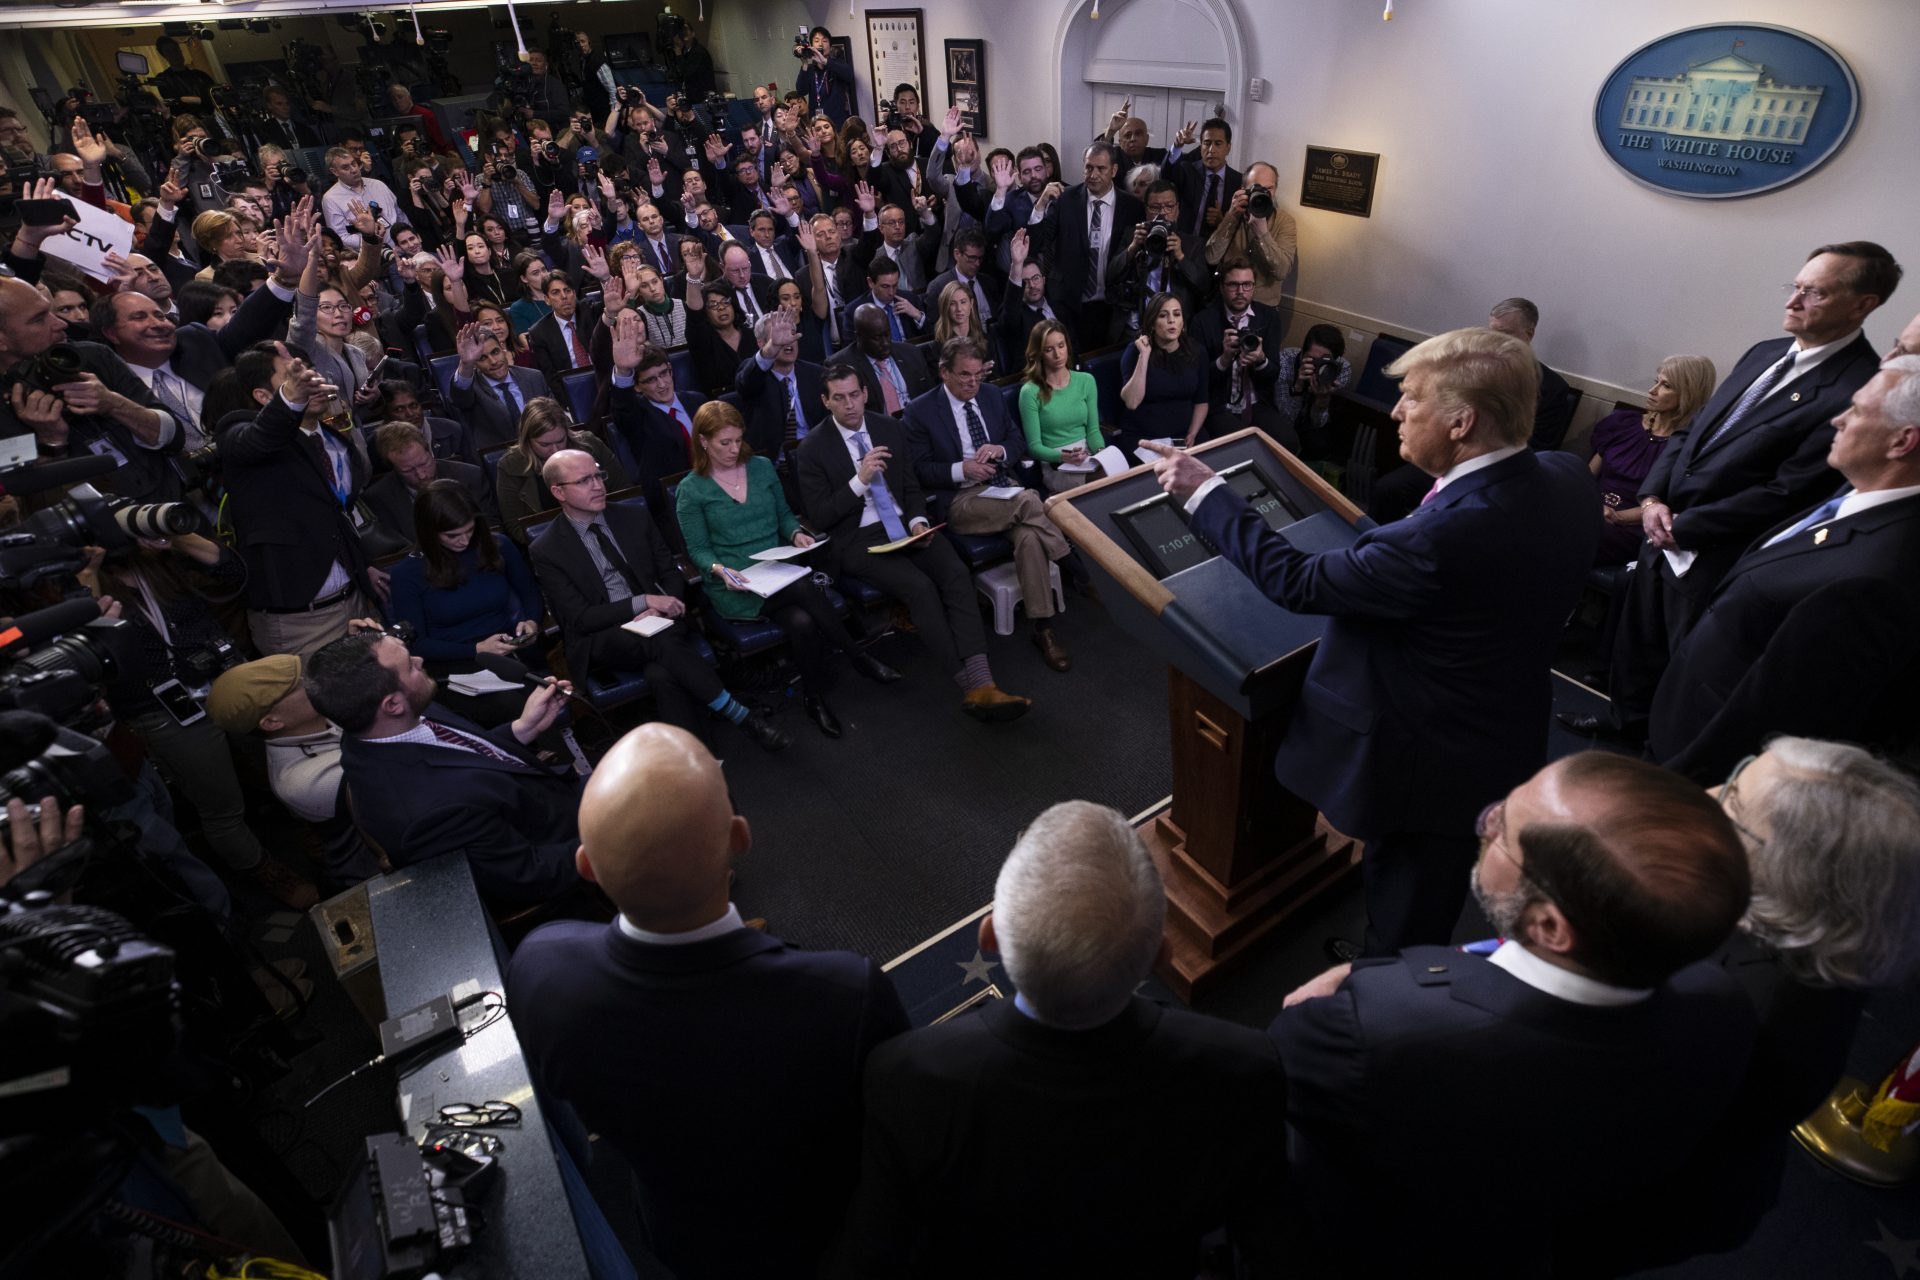 President Donald Trump, with members of the president's coronavirus task force, speaks during a news conference in the Brady Press Briefing Room of the White House, Wednesday, Feb. 26, 2020, in Washington.